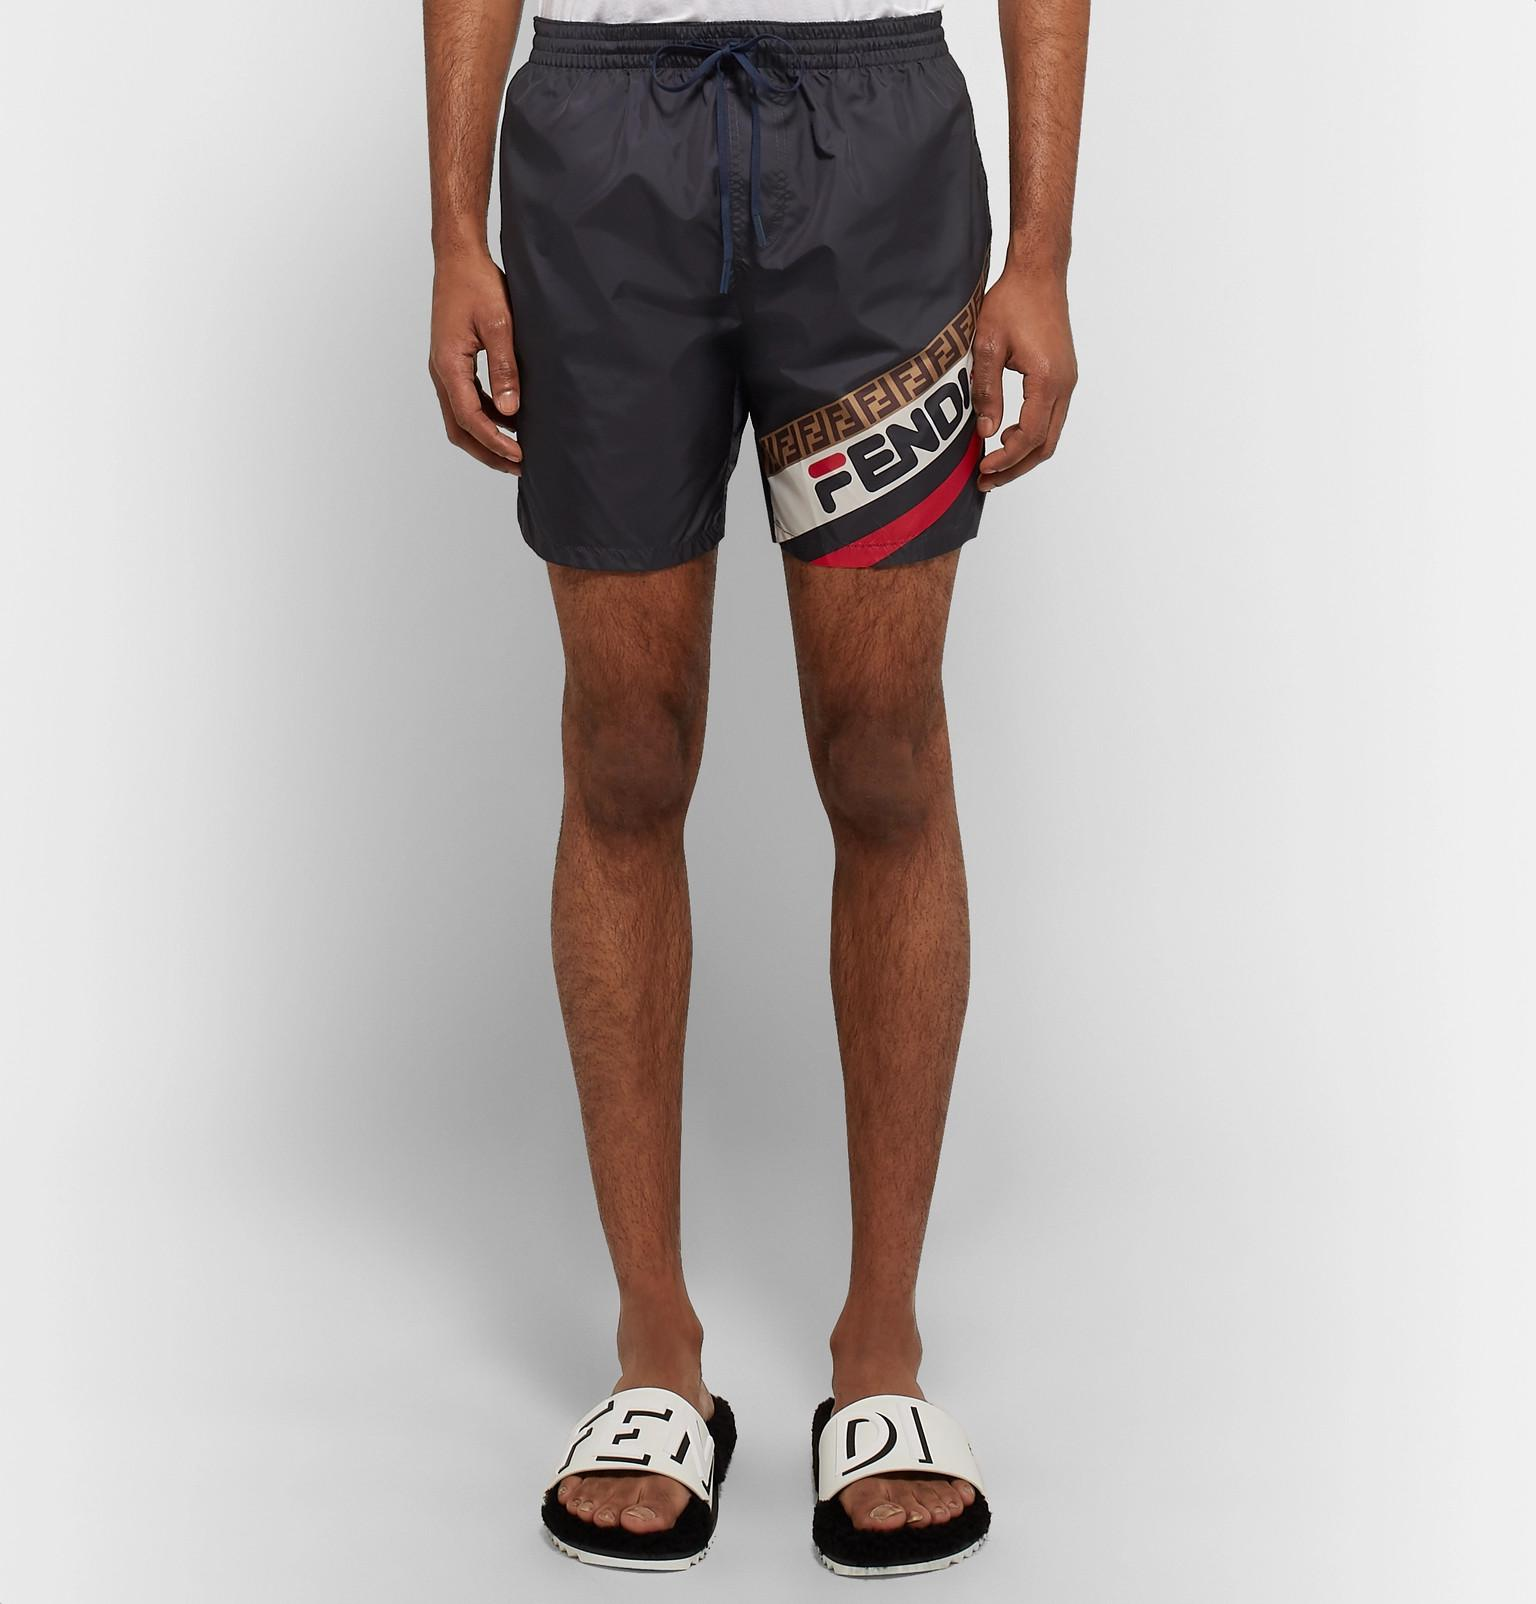 51b577a51d Fendi - Blue Slim-fit Short-length Logo-print Swim Shorts for Men. View  fullscreen